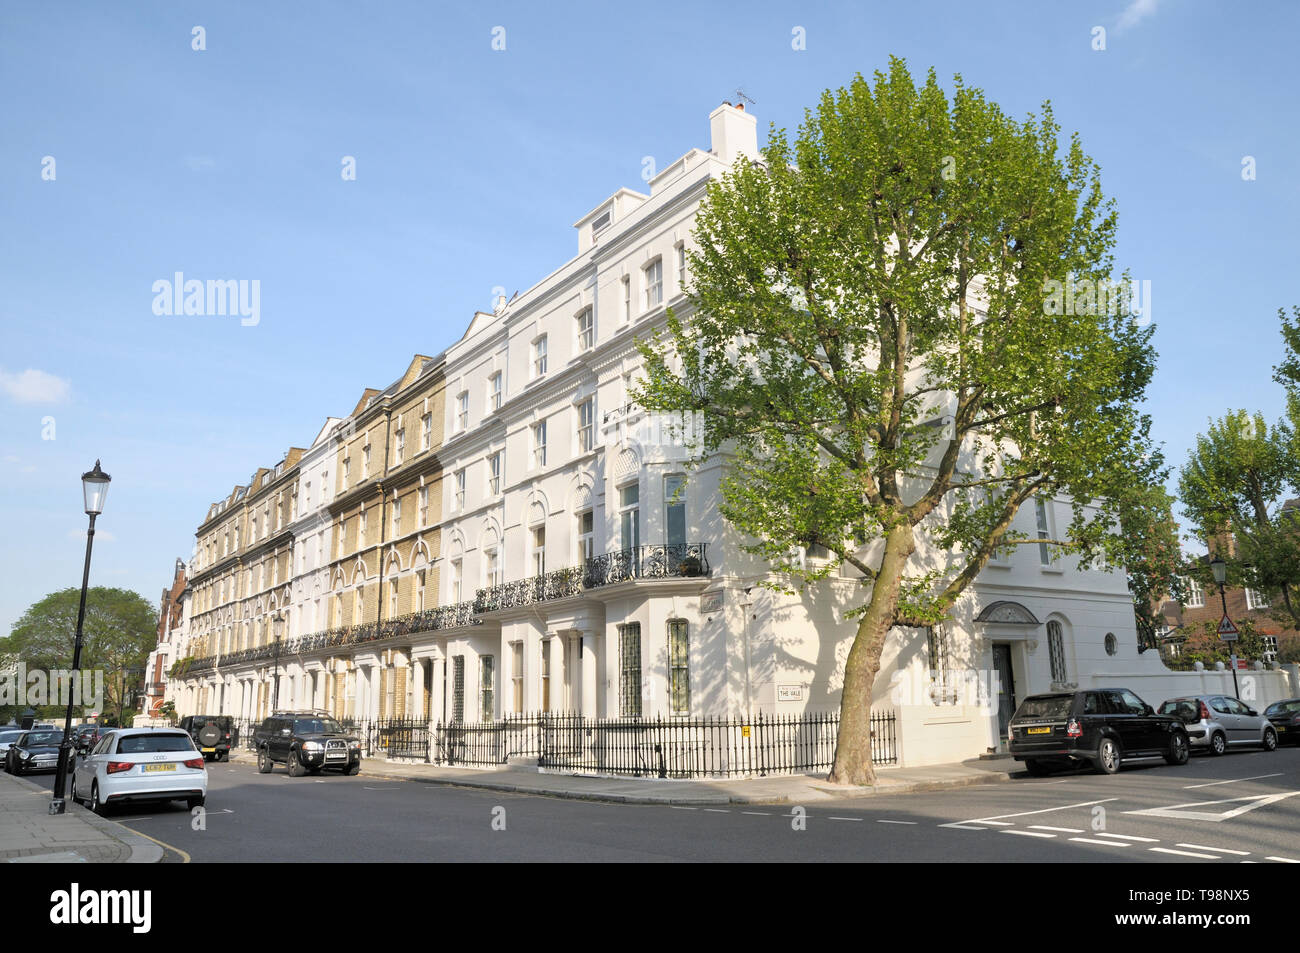 Period architecture at the junction of the leafy residential streets of Elm Park Road and The Vale, Chelsea, London SW3, England, UK Stock Photo